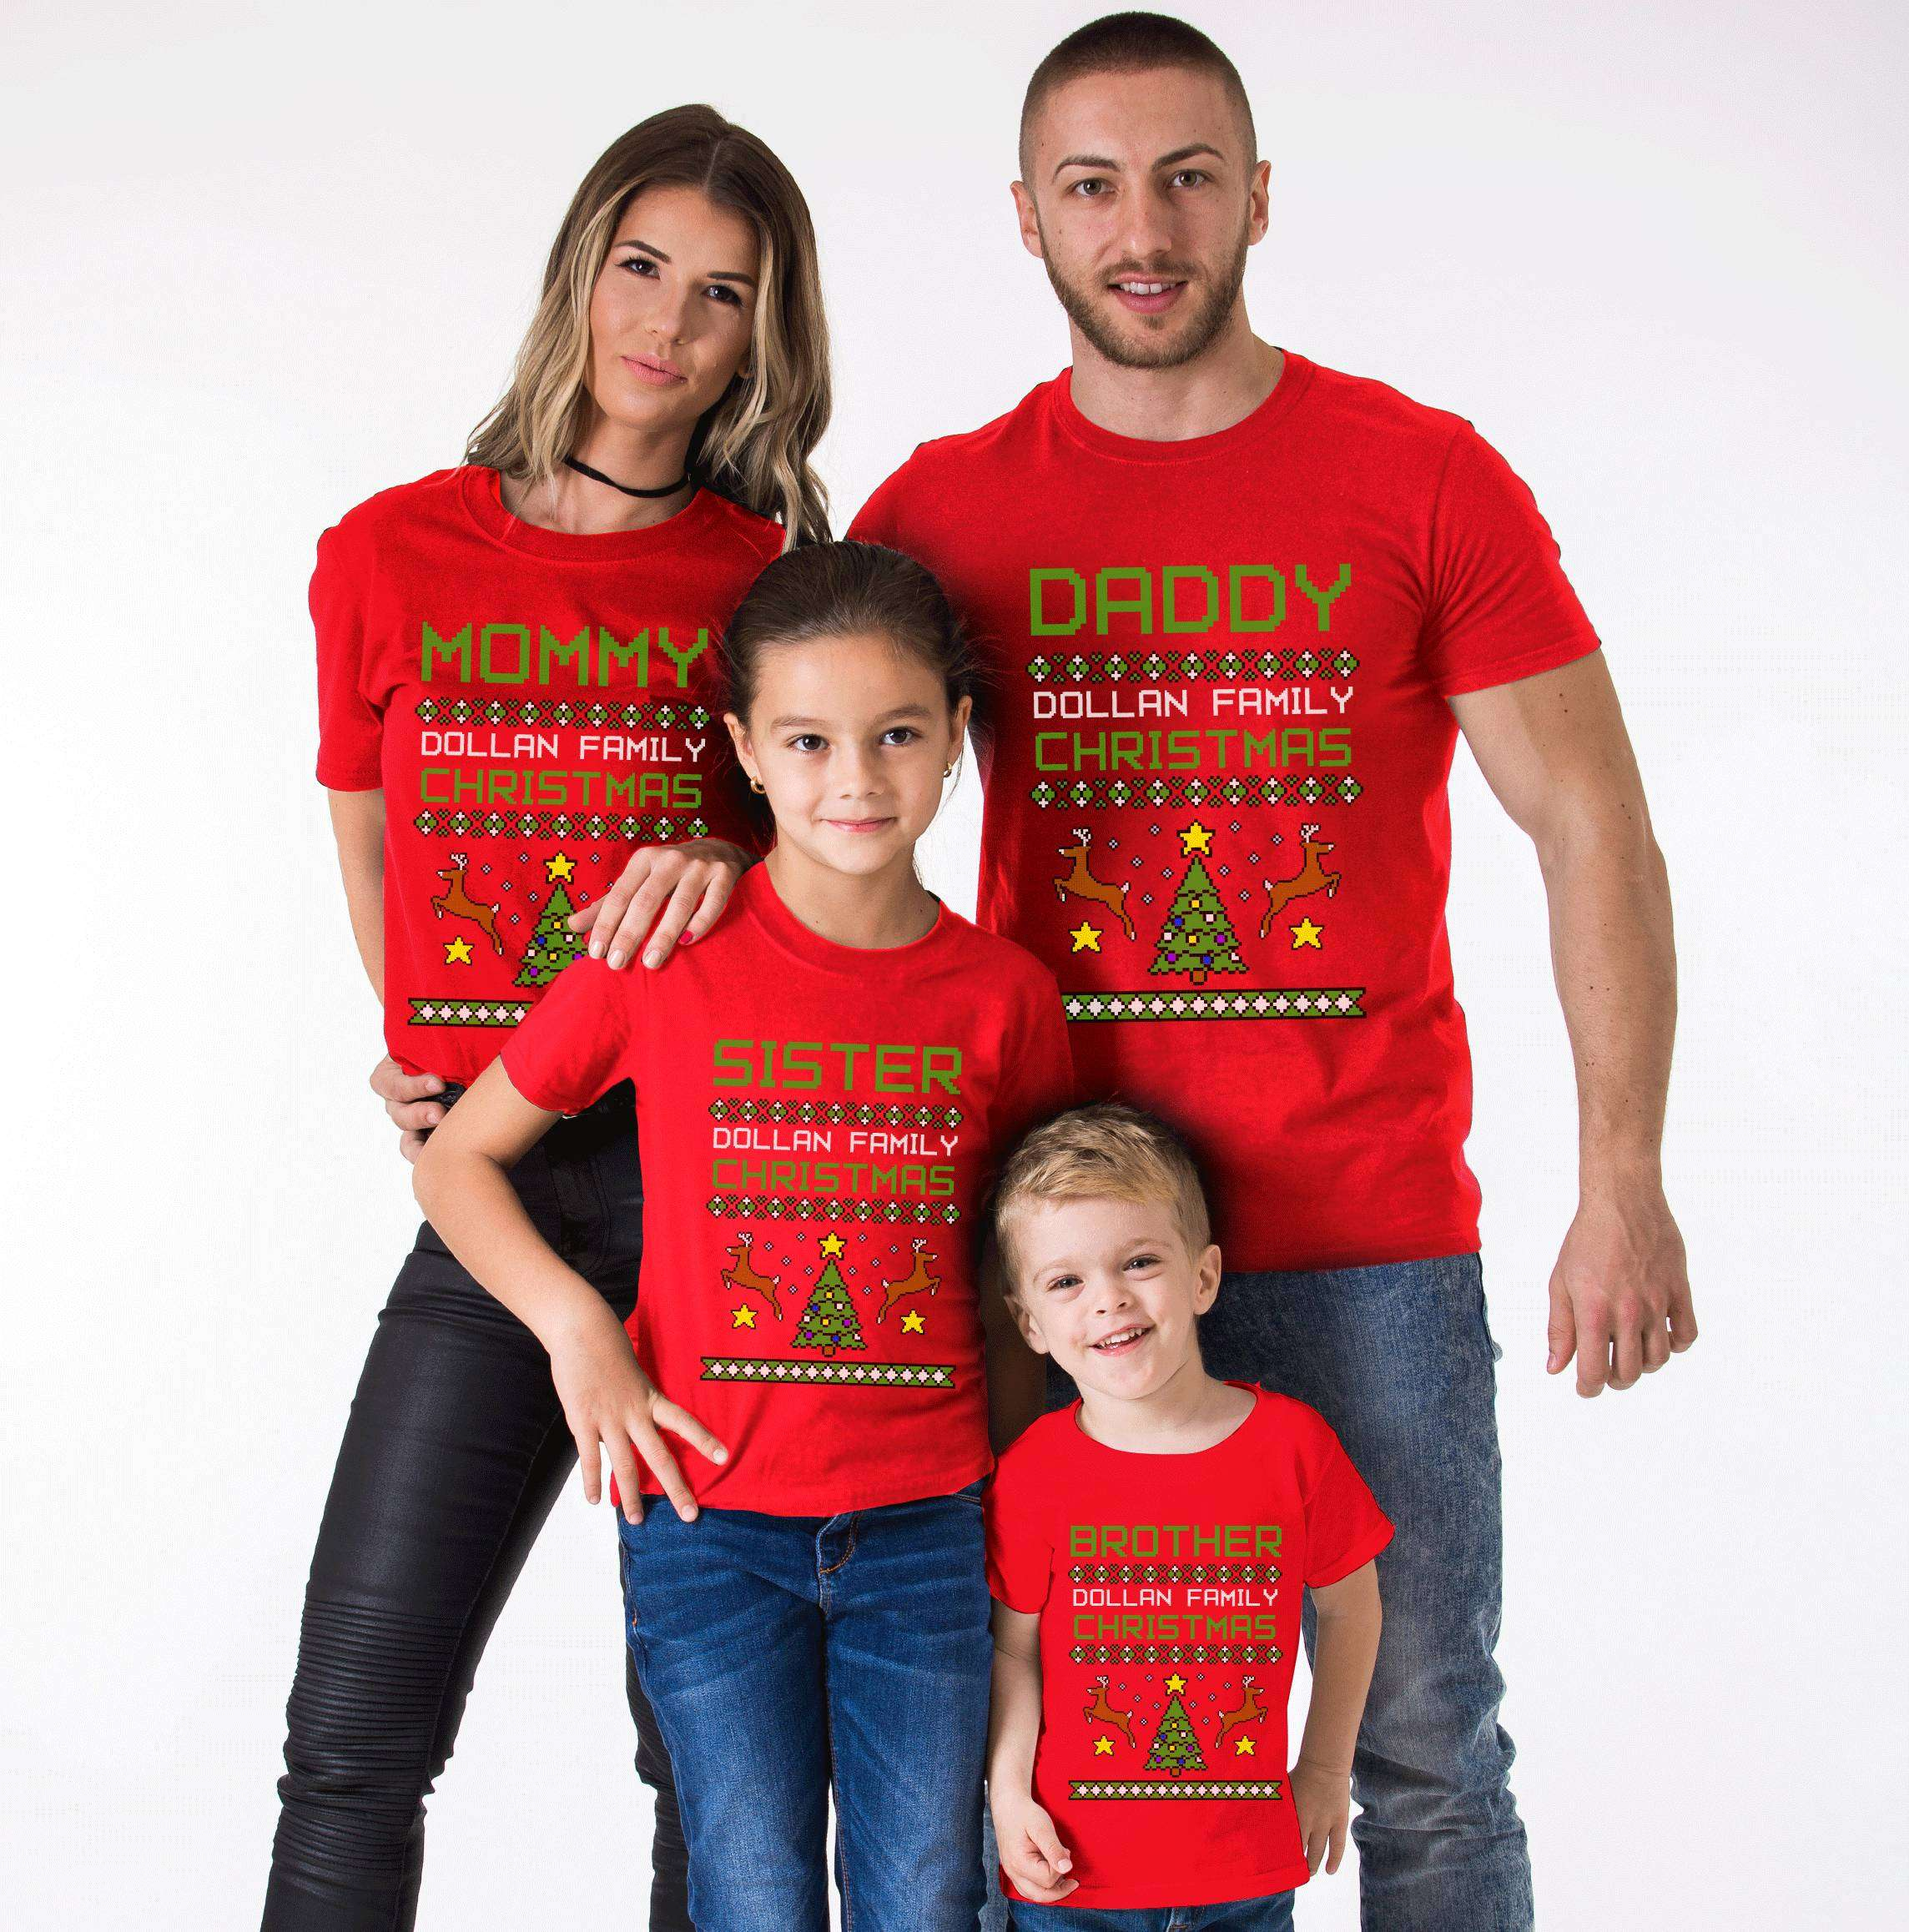 b9f3d96626 Ugly Christmas Family Shirts, Mommy Daddy Baby, Matching Family ...